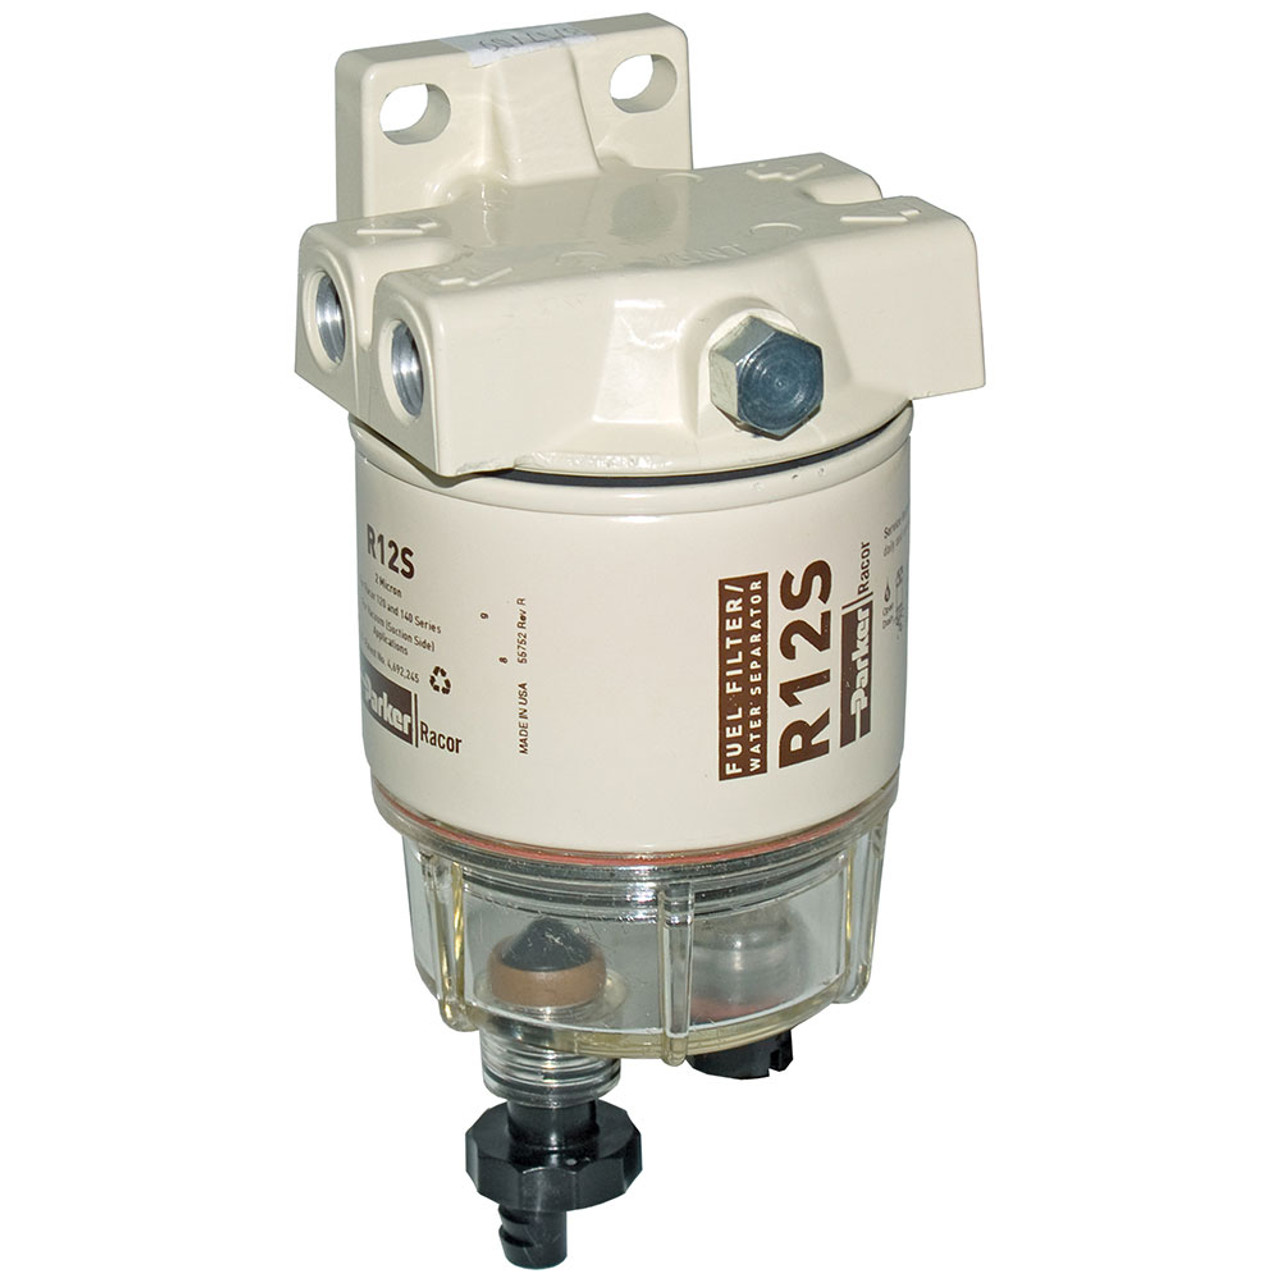 racor 120a low flow fuel filter water separator filter assembly 2 micron 6.0 Powerstroke Fuel Filter